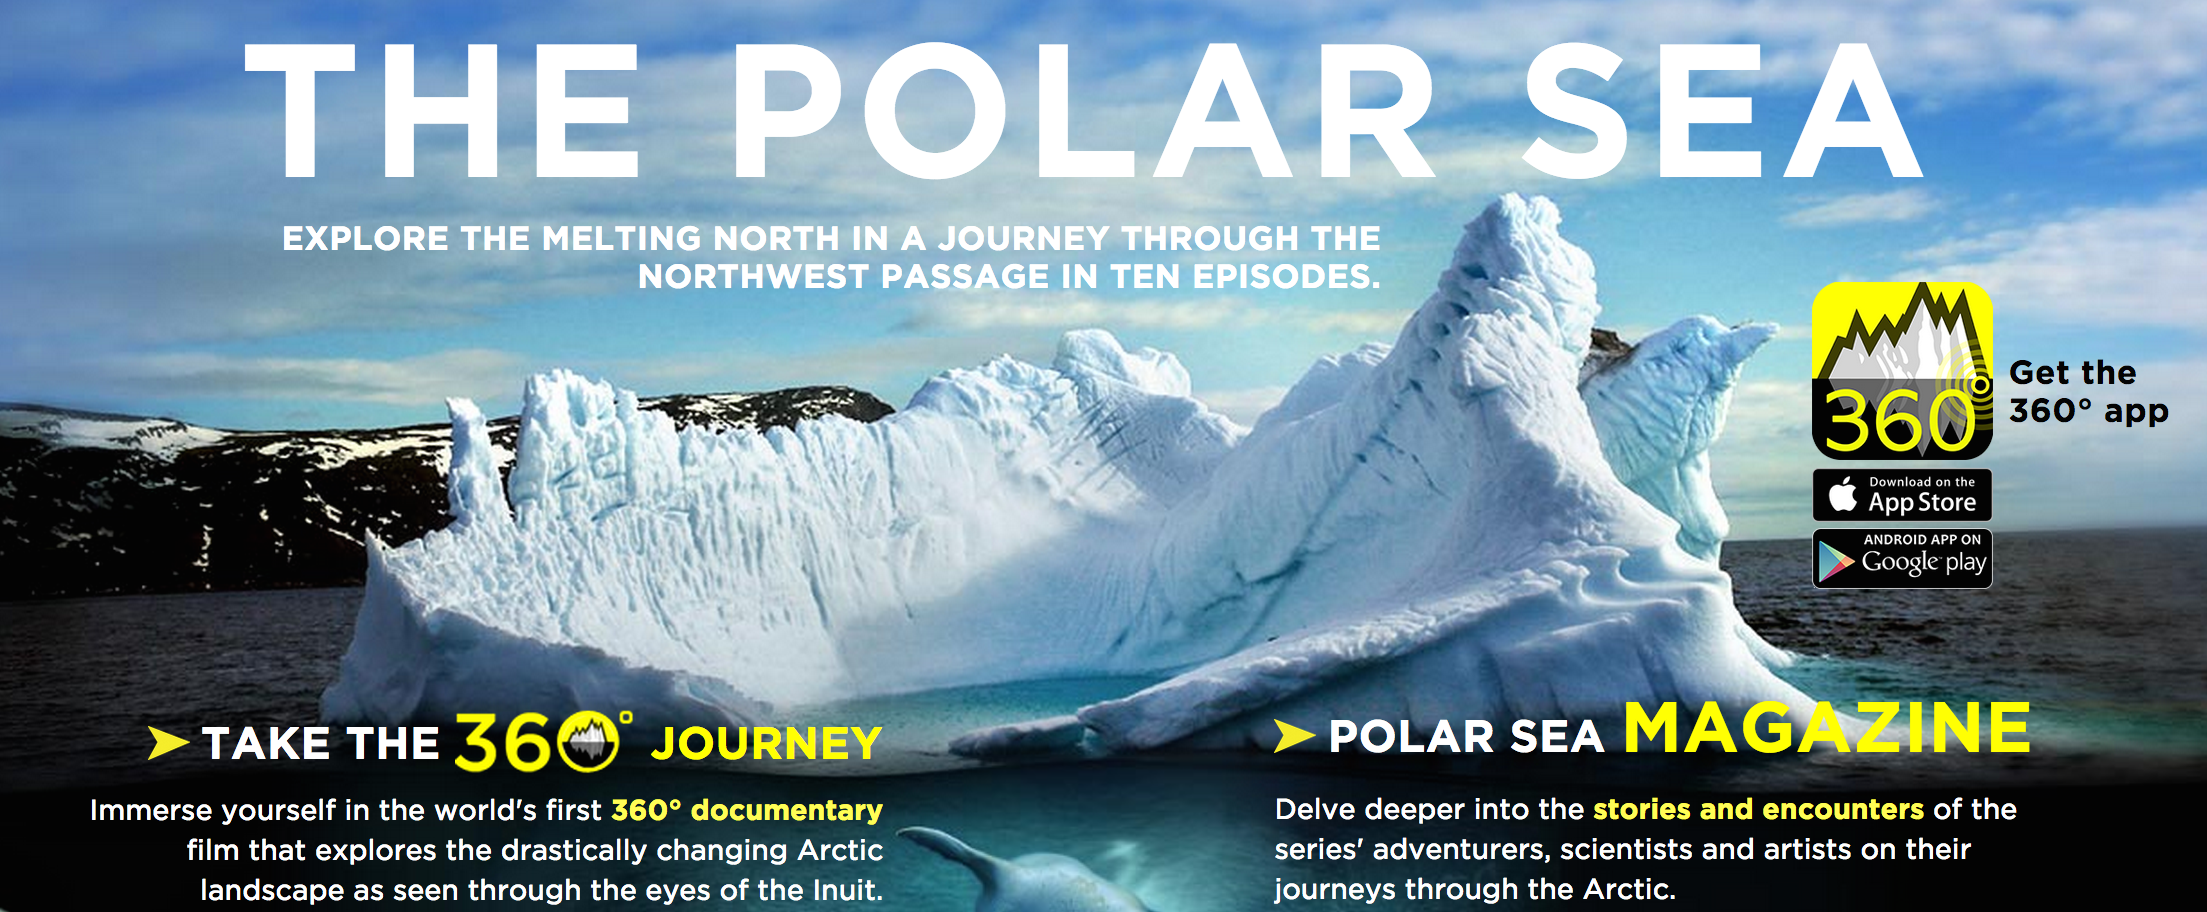 This fantastic Canadian television show! The 360 degree footage is pretty amazing -- move your cursor around to see all around you as you visit the Polar Sea.